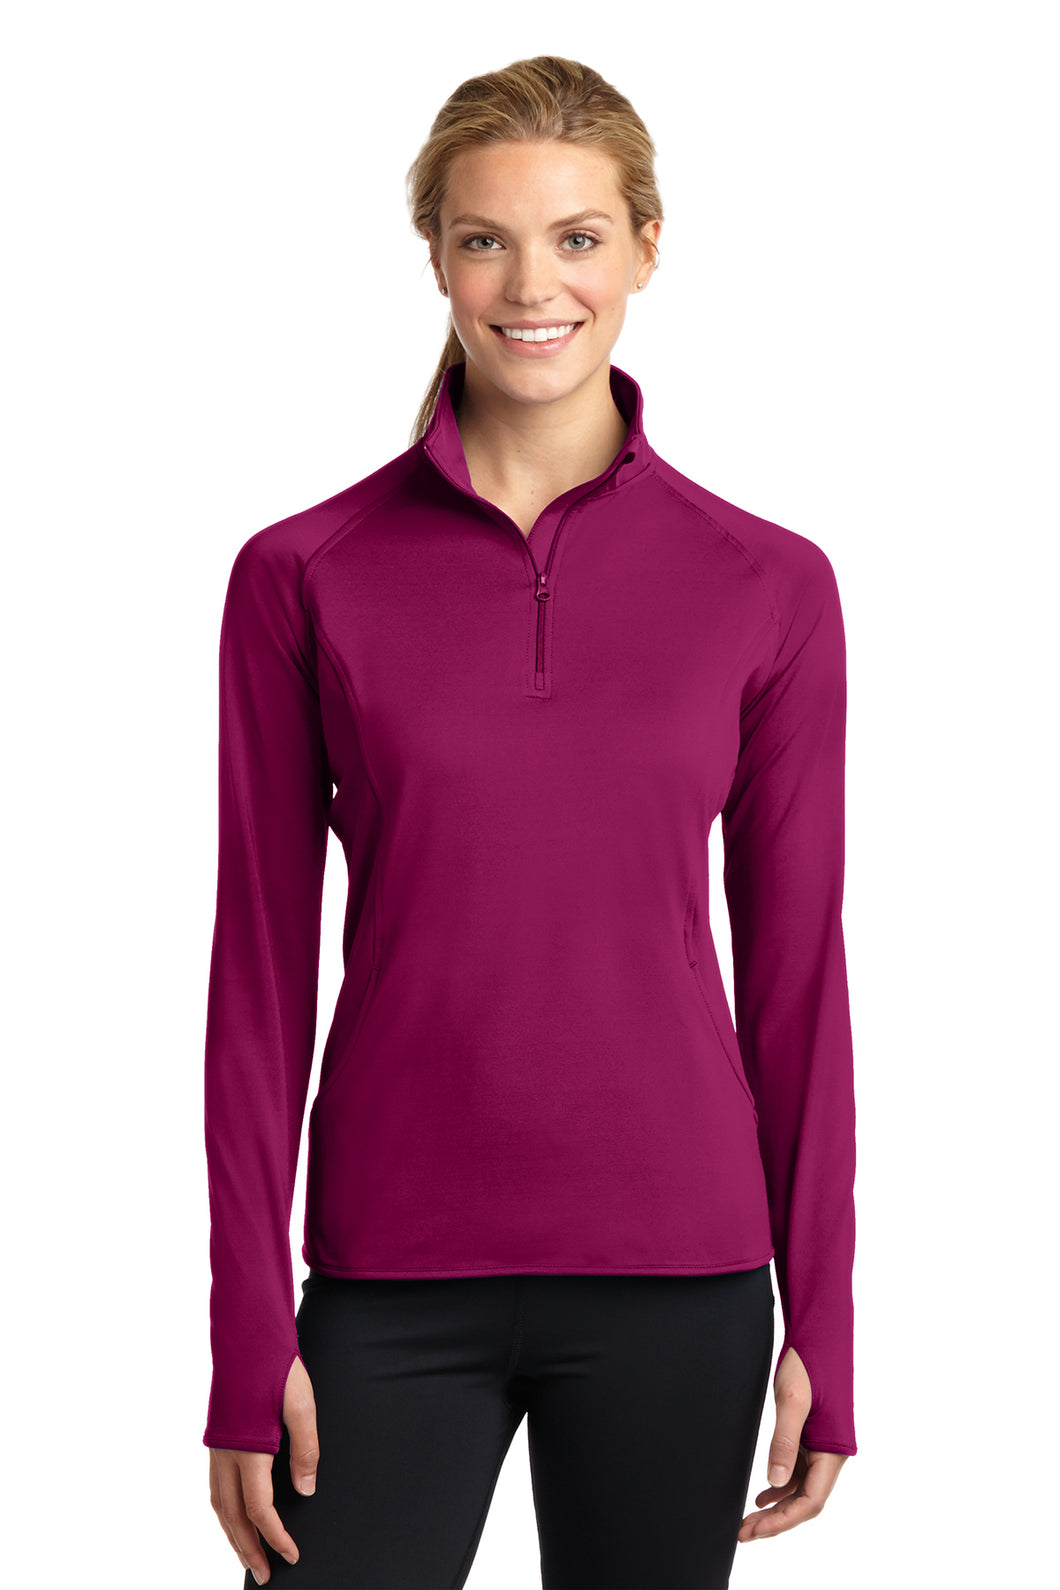 LST850 Sport-Tek® Ladies Sport-Wick® Stretch 1/2-Zip Pullover